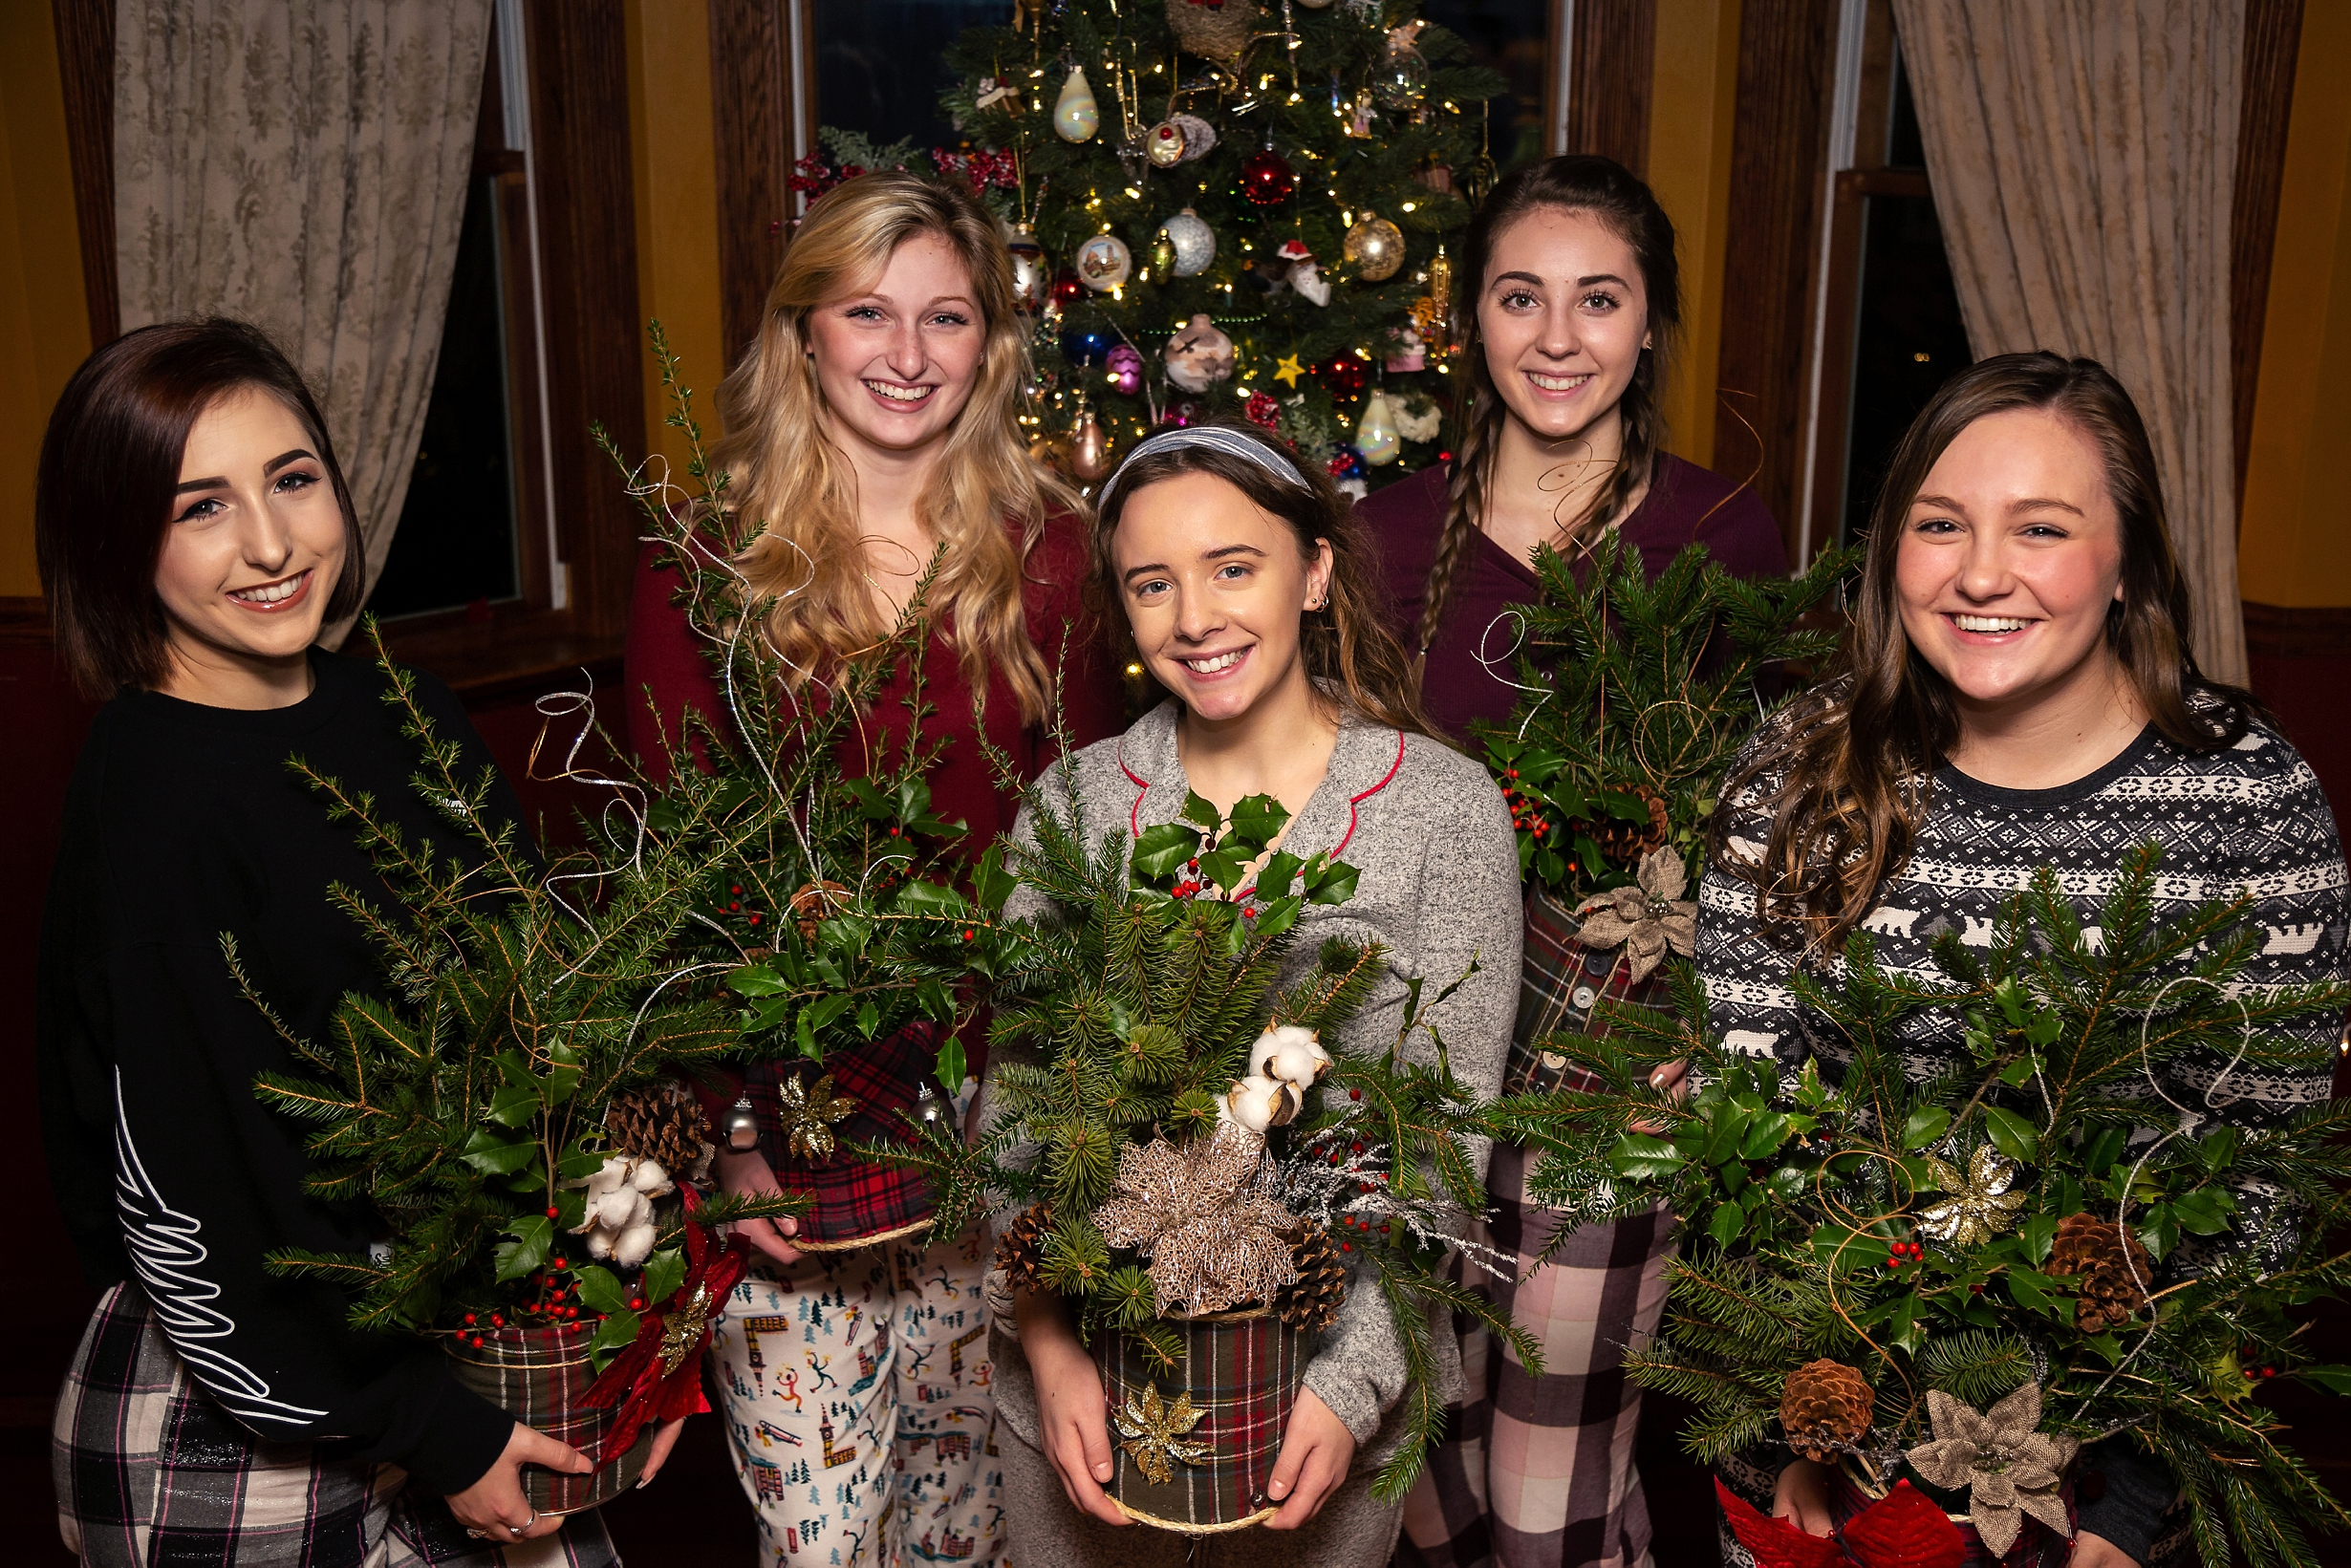 2019 VIP Representatives create christmas evergreen centerpieces to donate to a local nursing home (Saint Andrew's village, Indiana PA). Jessica Miladinovich, Lauren Wilner, Marissa Tunstall, Maggie Arone, Blake Tonkin.